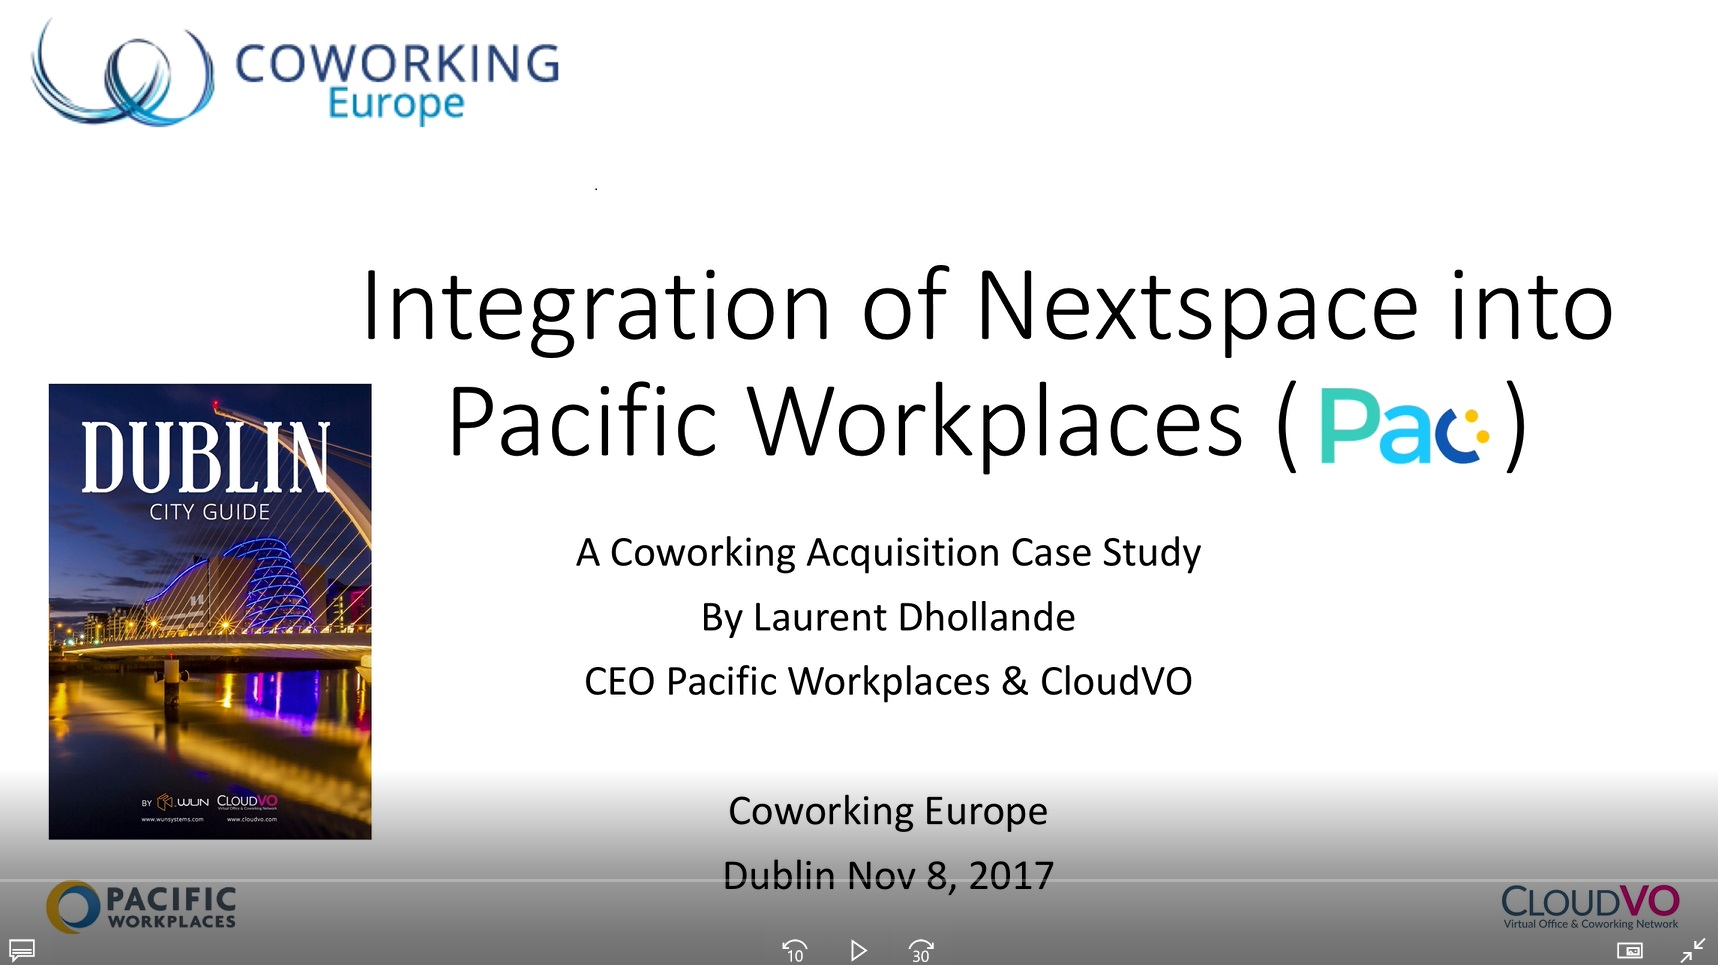 NextSpace Integration into Pacific Workplaces Presentation Coworking Europe